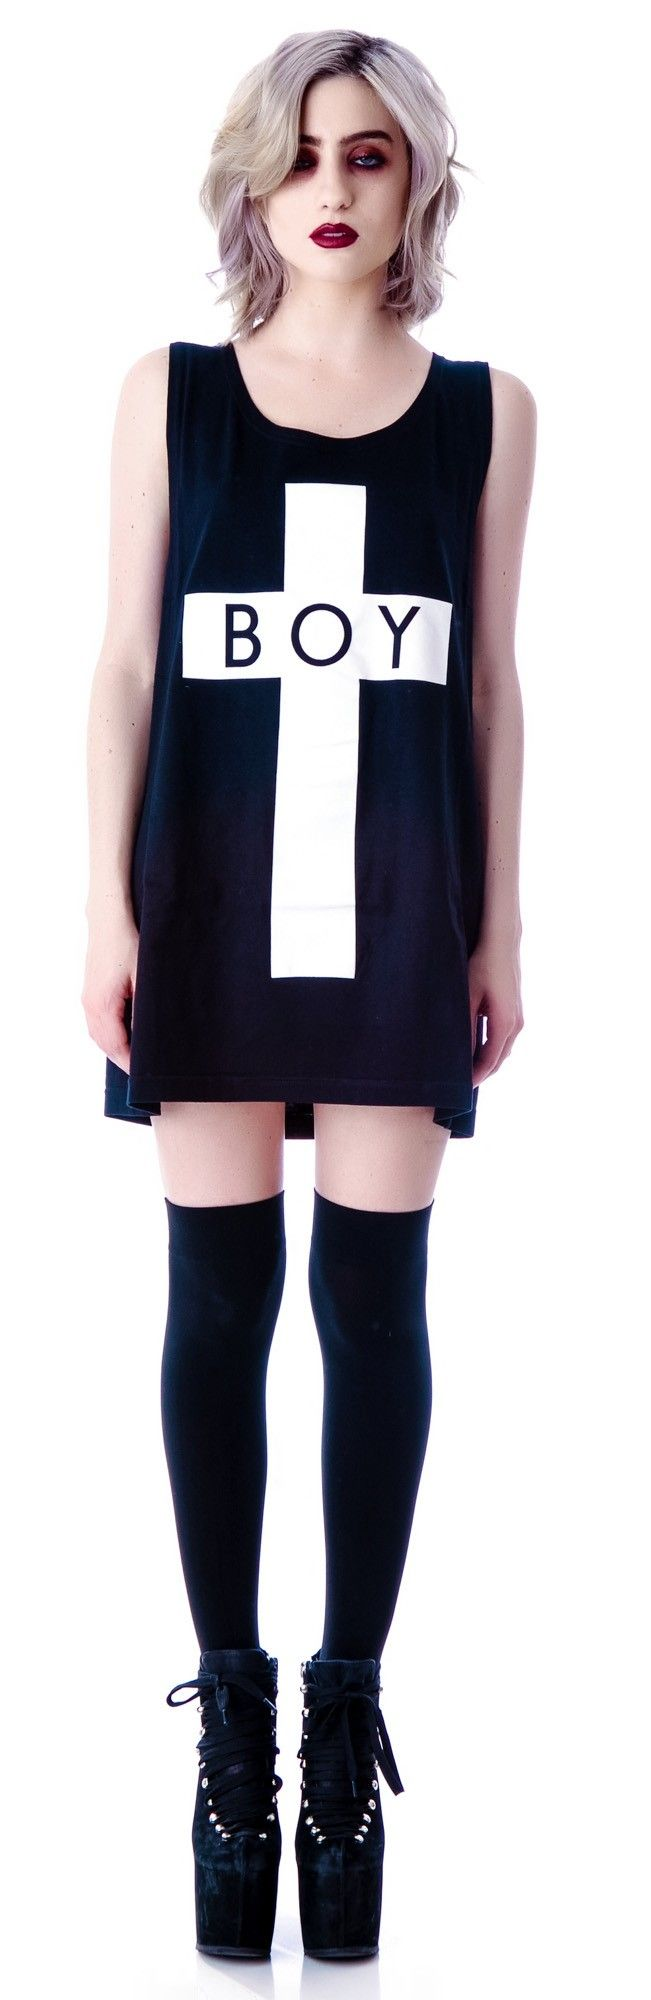 X Boy London Boy Cross Oversized Tank http://www.dollskill.com/long-clothing-boy-cross-tank.html